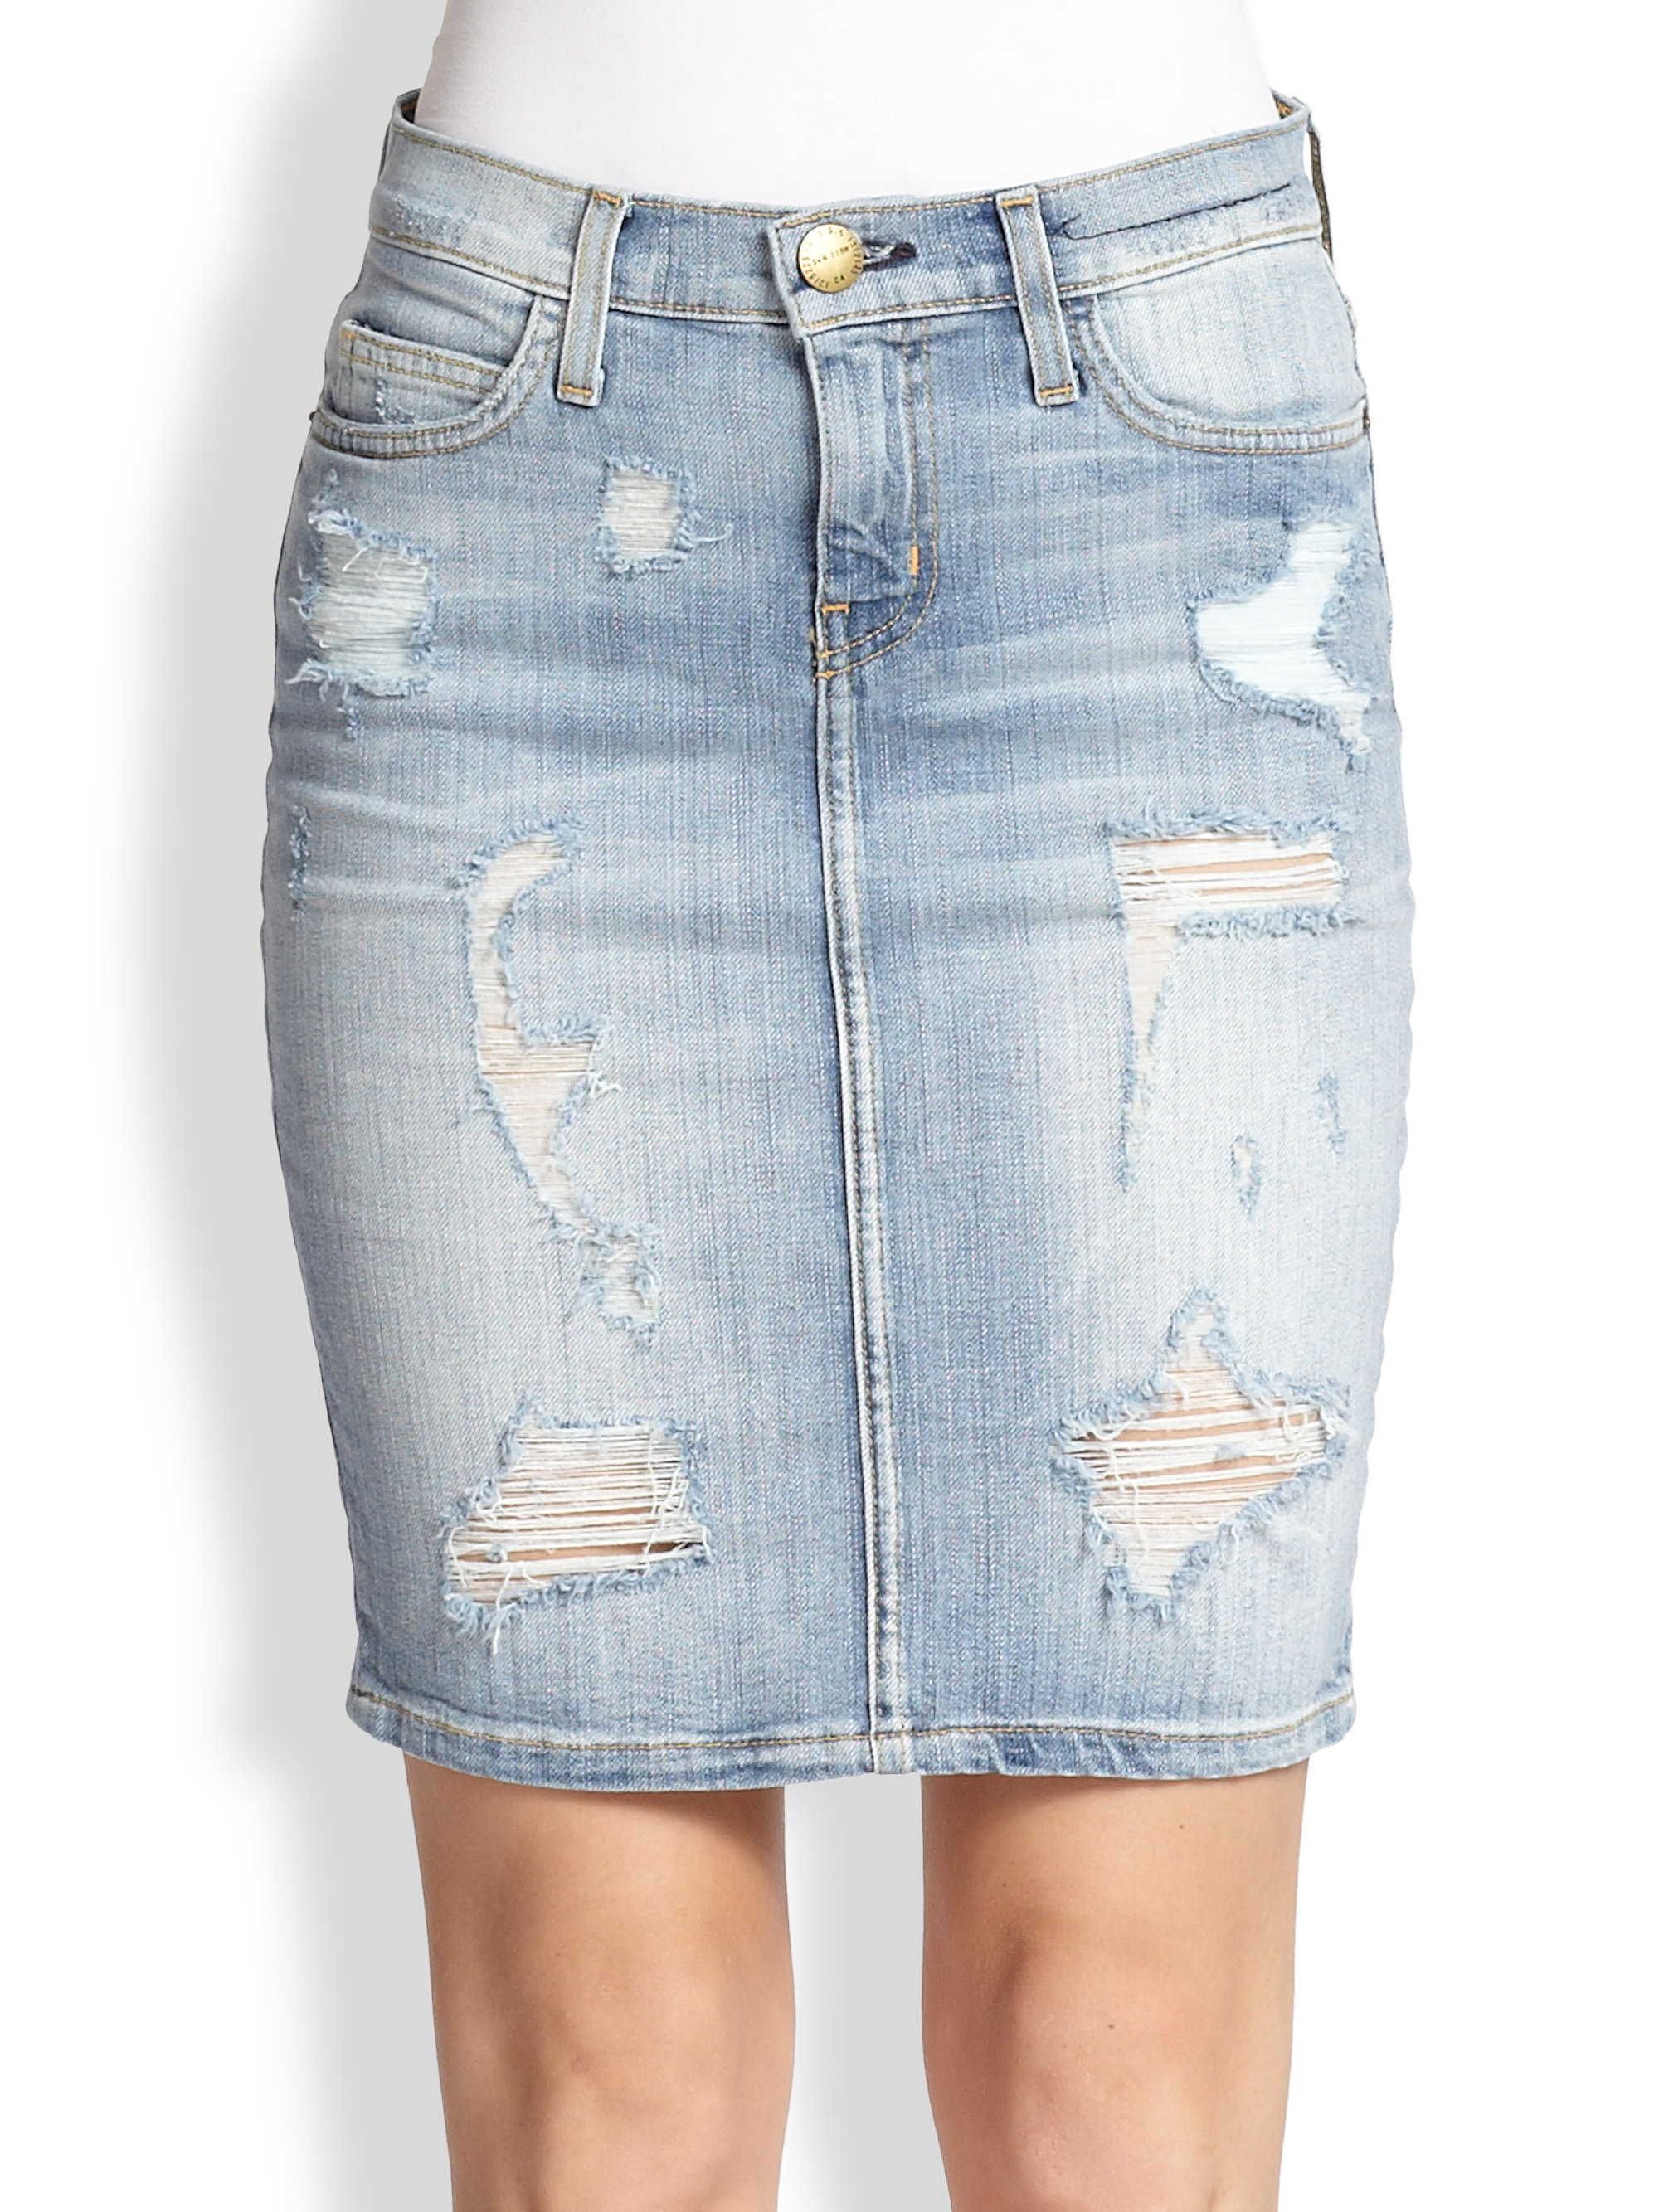 Distressed pencil jean skirt – Modern skirts blog for you